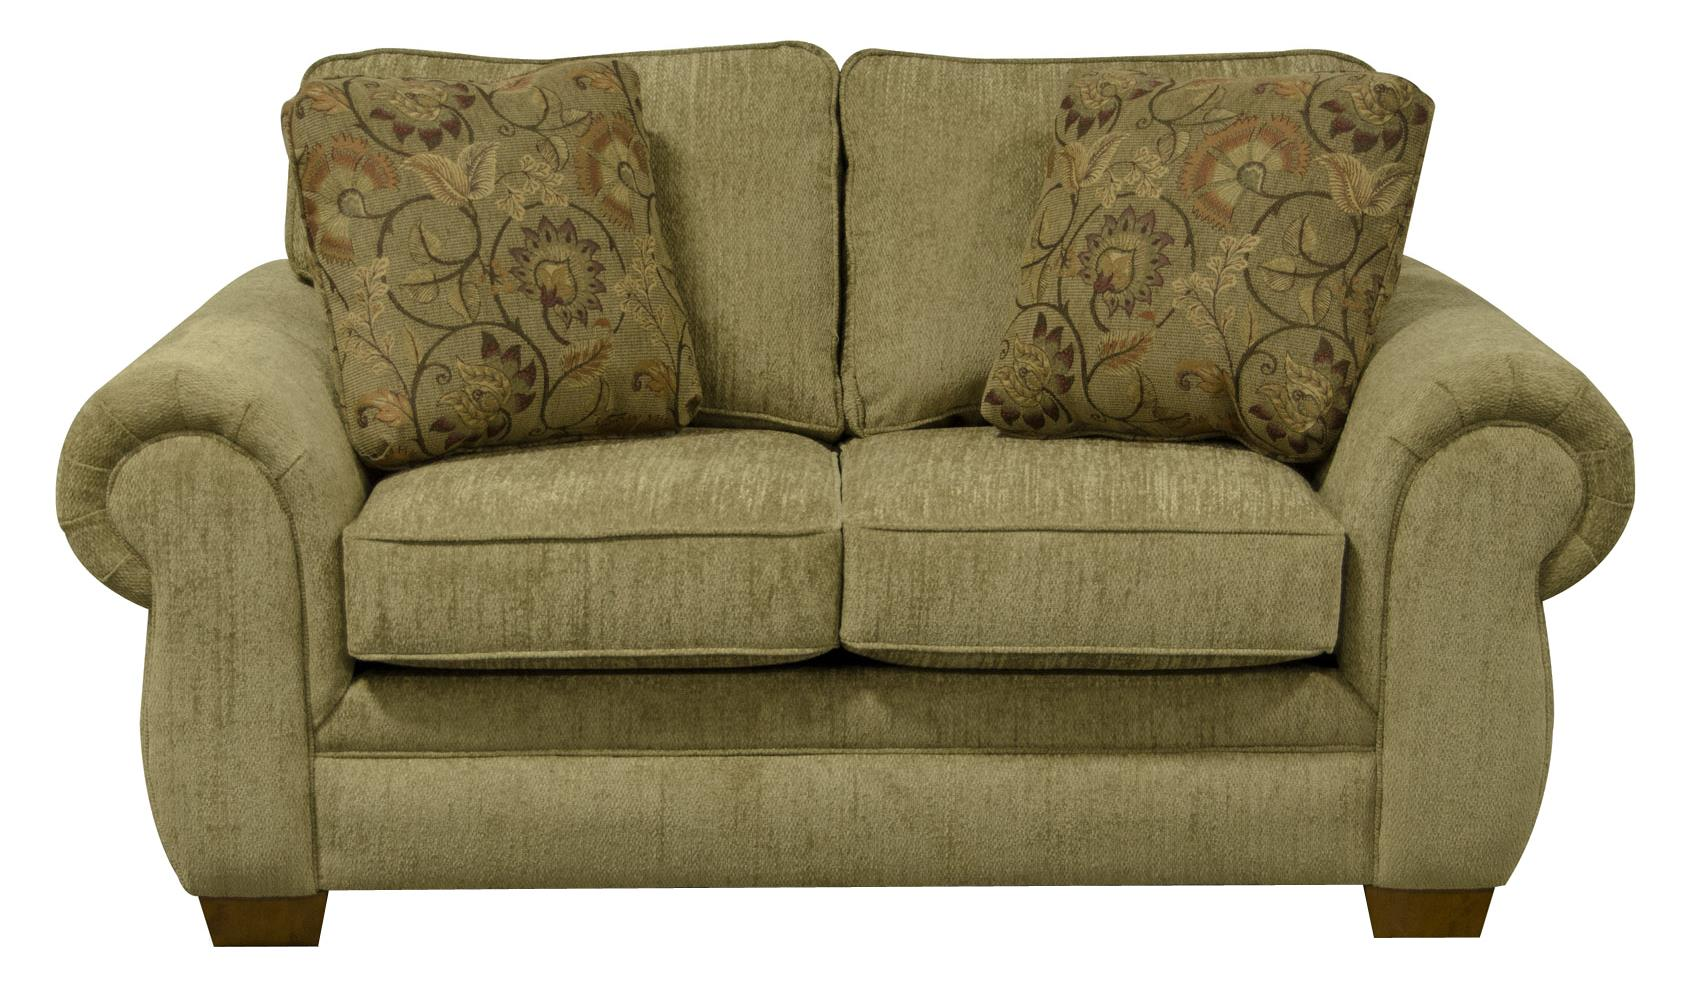 England Walters Loveseat - Item Number: 6636-6939